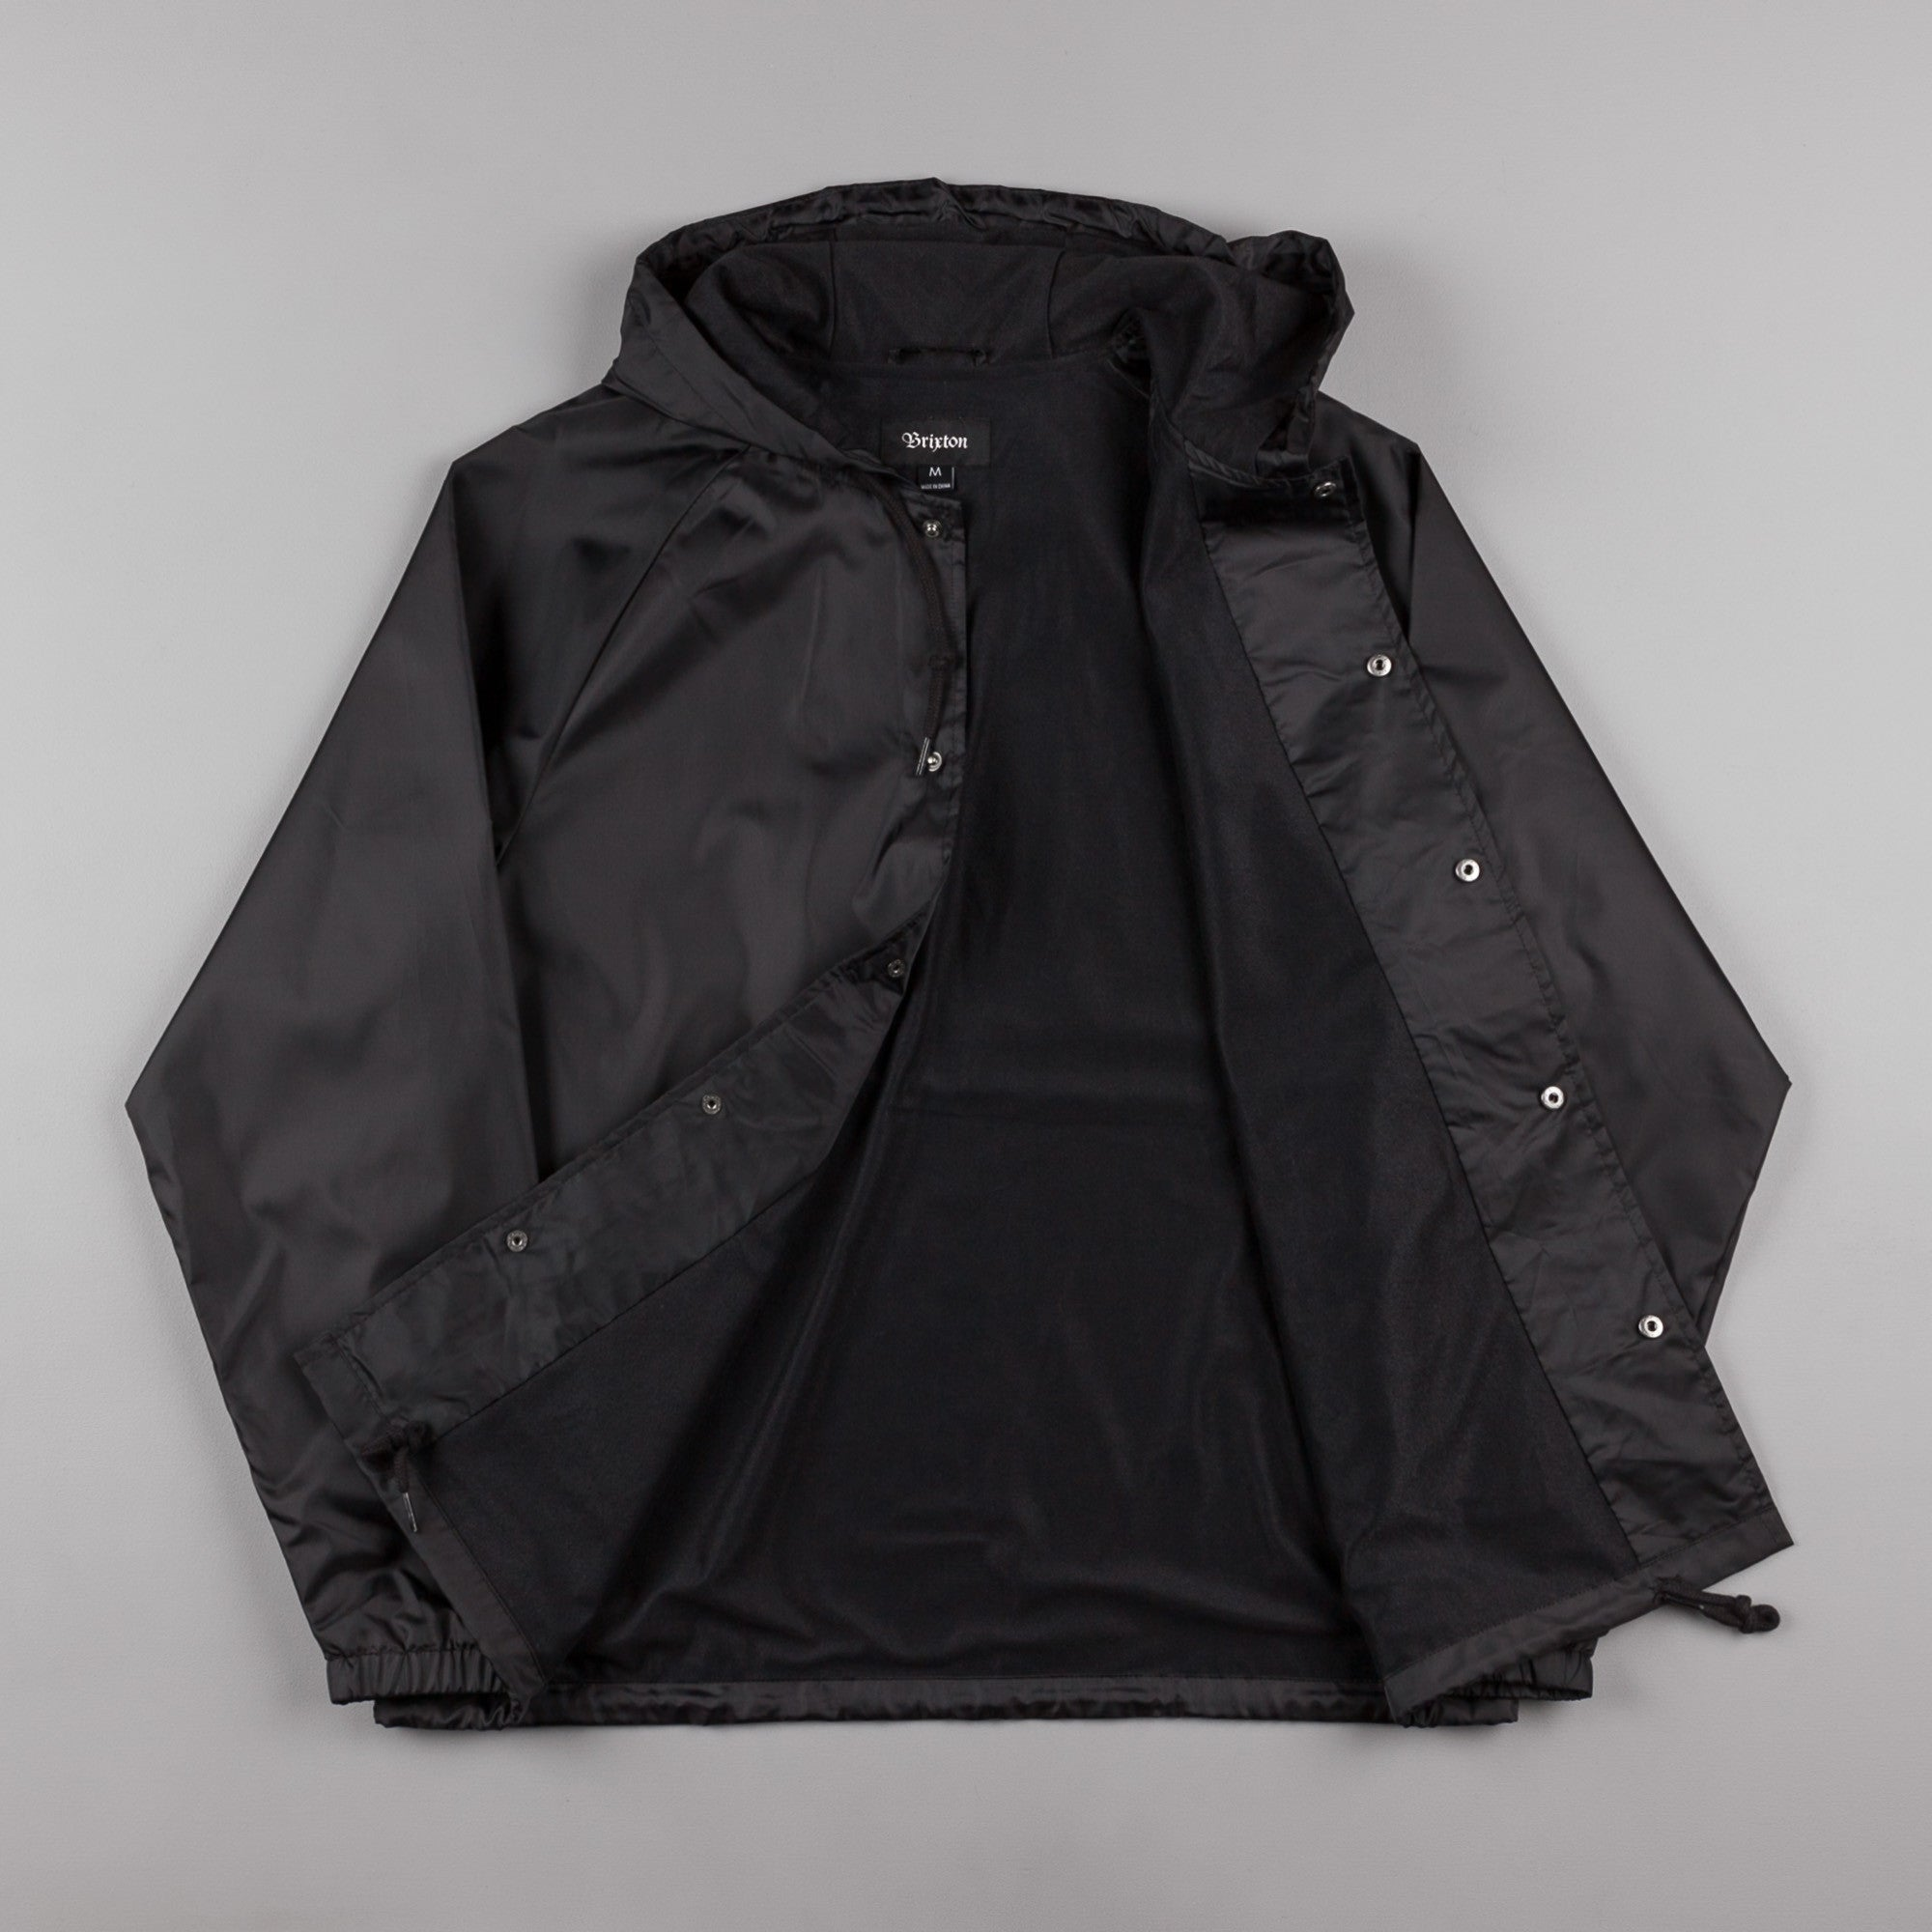 Brixton Maverick Jacket - Black